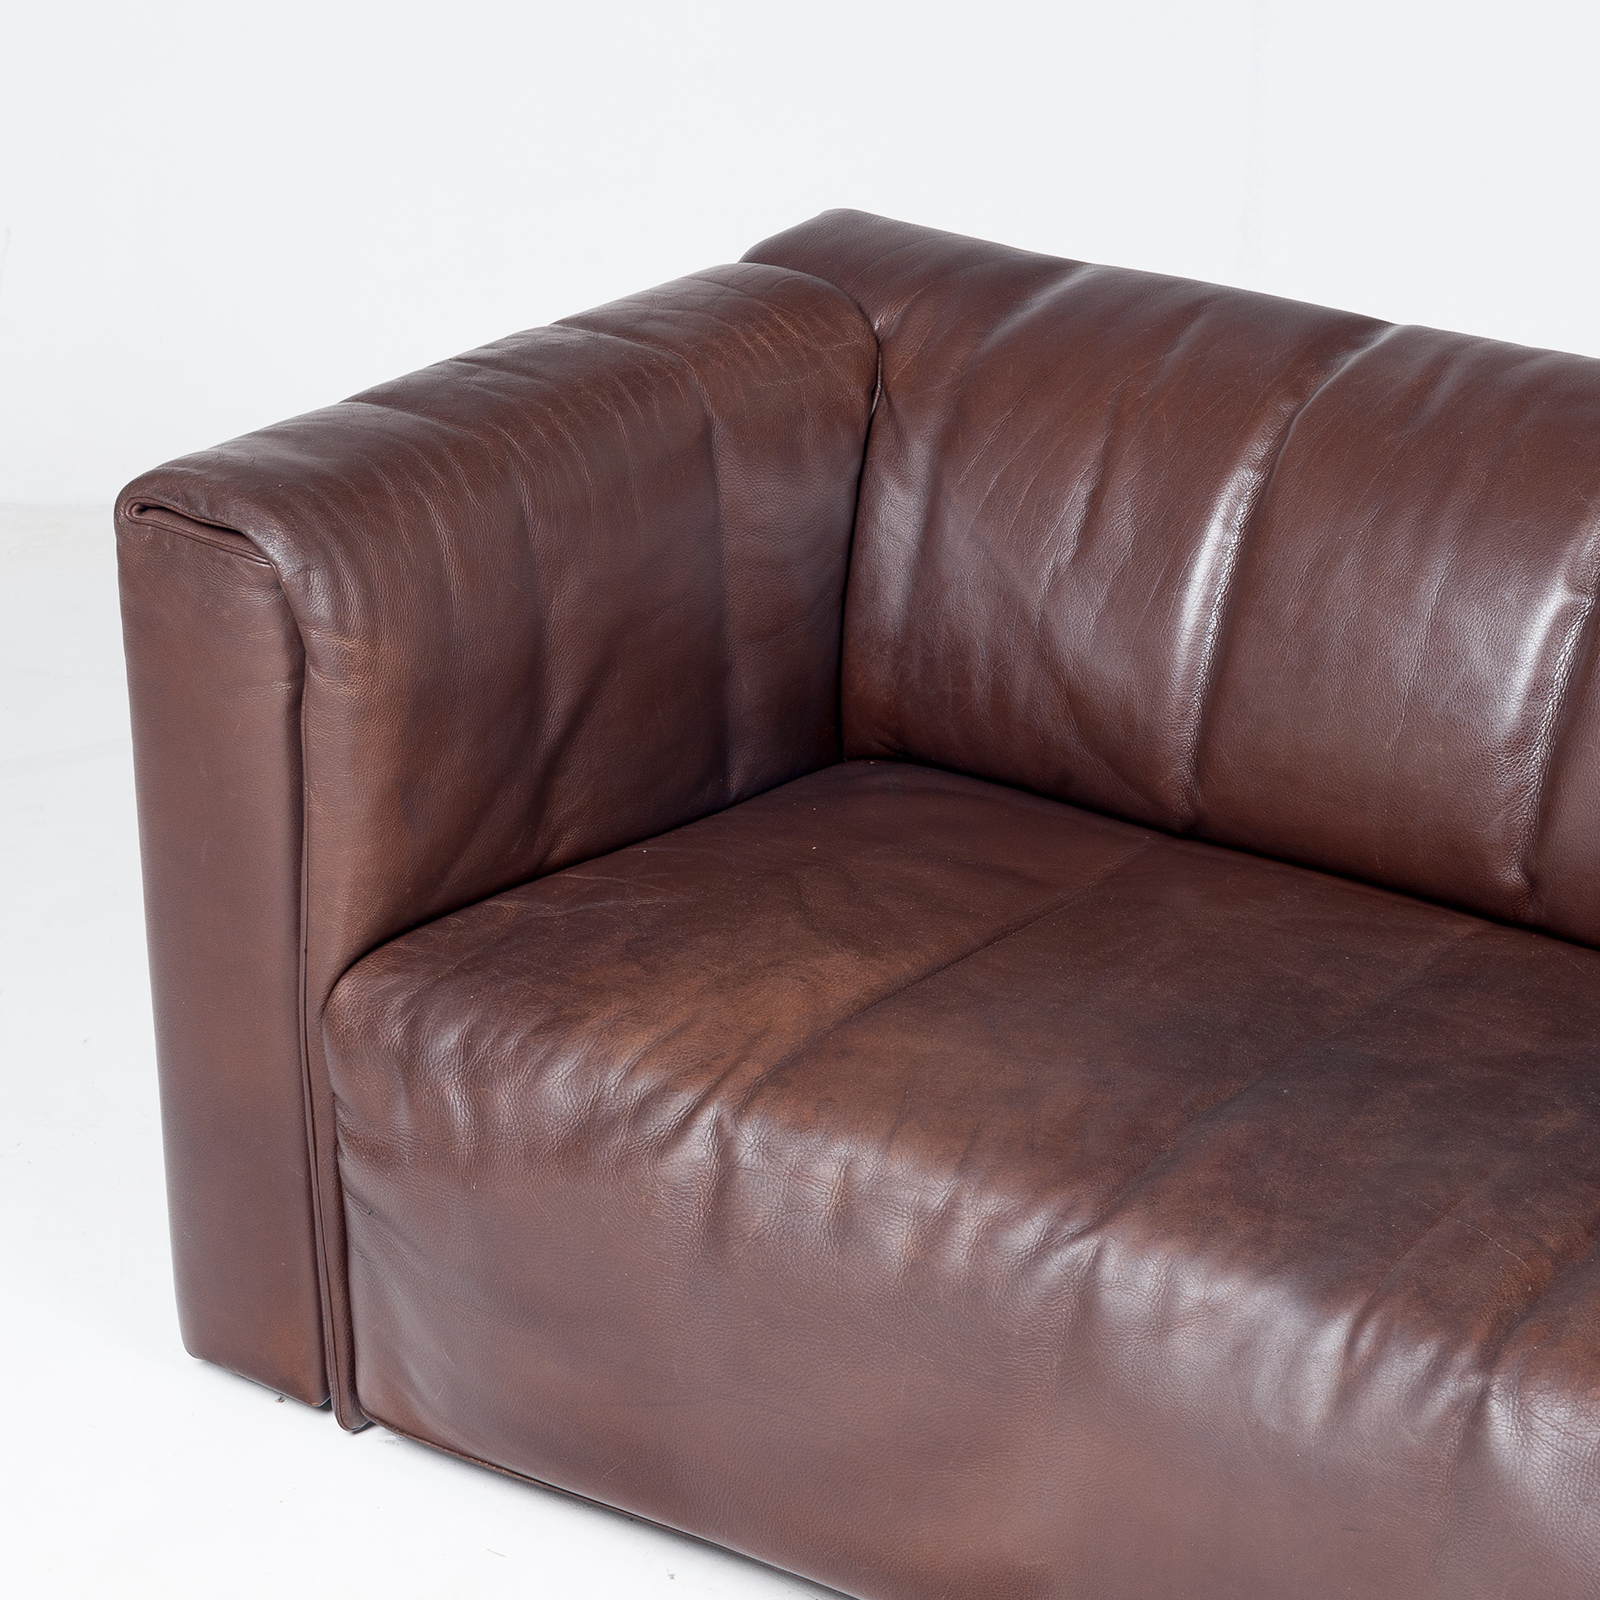 2.5 Seat Leather Sofa By Wittmann, Austria41